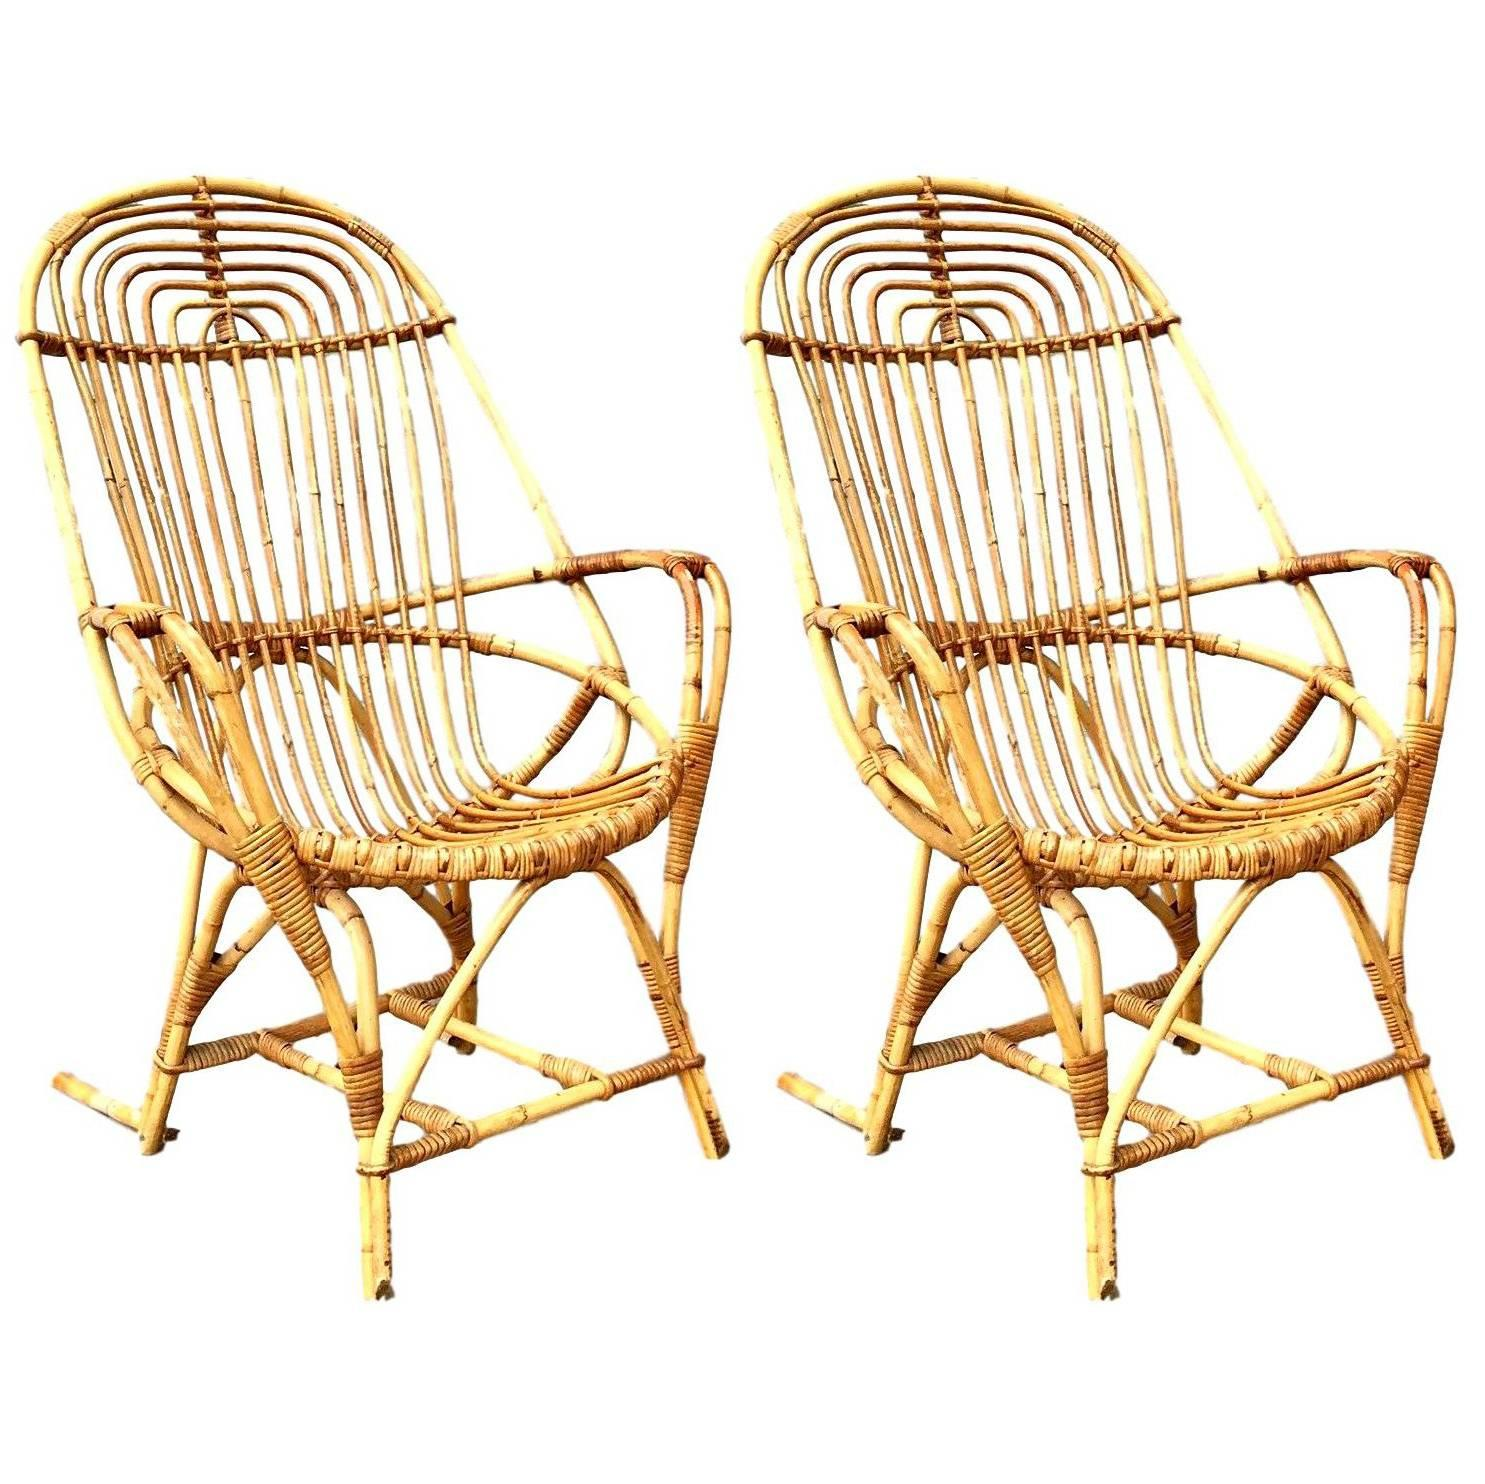 Rattan Chairs Pair Of French Sculptural Rattan Chairs